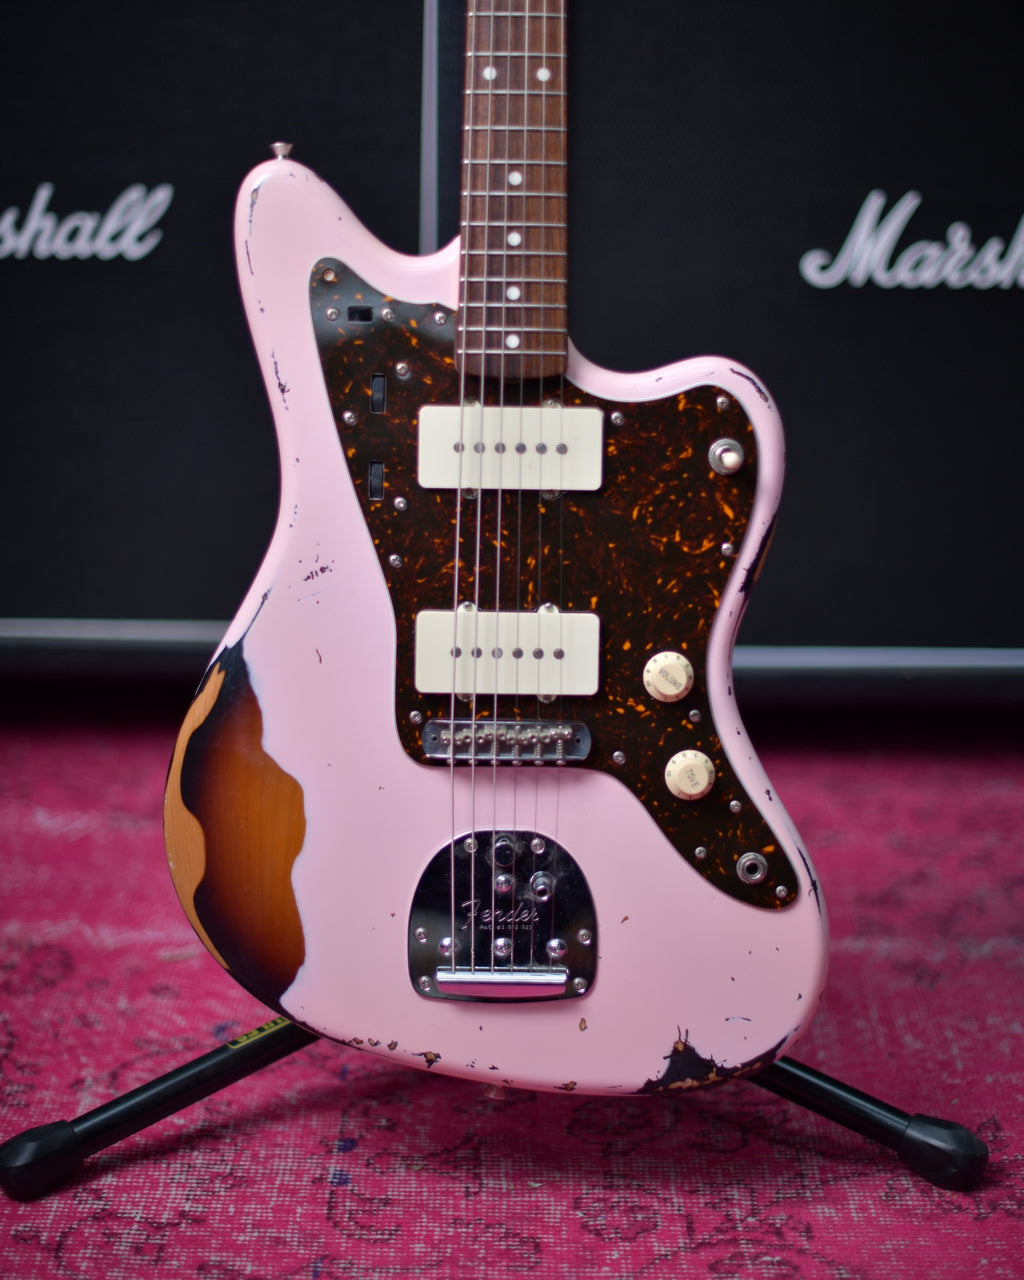 Fender Japan Jazzmaster Heavy Relic Shell Pink over 3TSB MIJ 2015